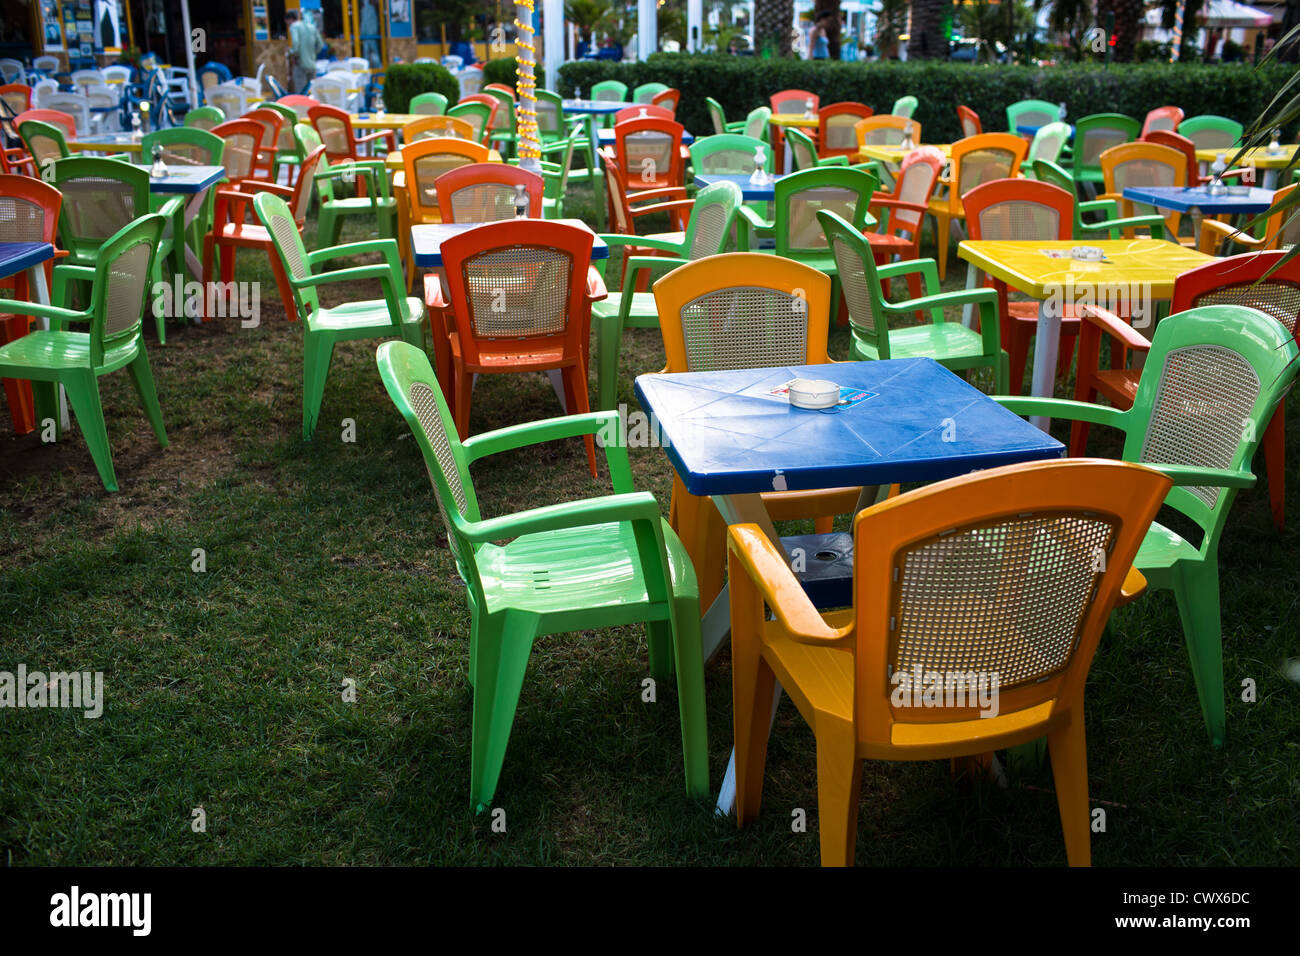 Empty plastic chairs in a beach cafe in Moraitika, Corfu, Ionian Islands, Greece. - Stock Image